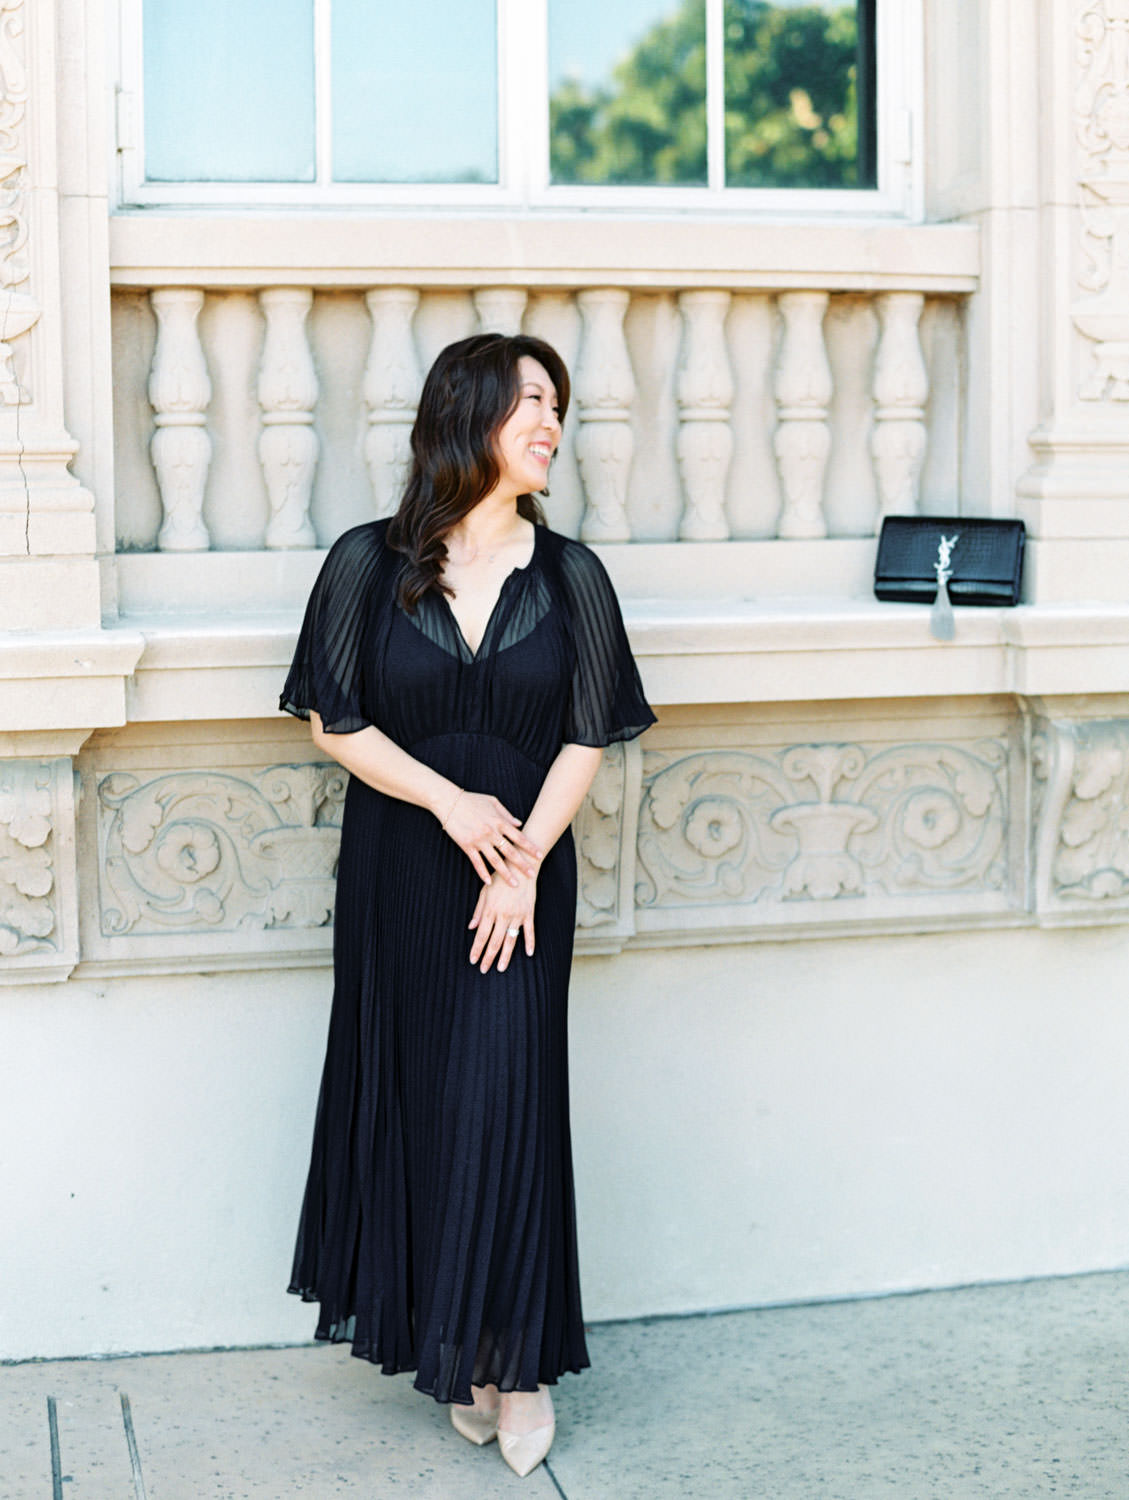 Engagement photos at Balboa Park with bride in black dress, film photographer Cavin Elizabeth in San Diego